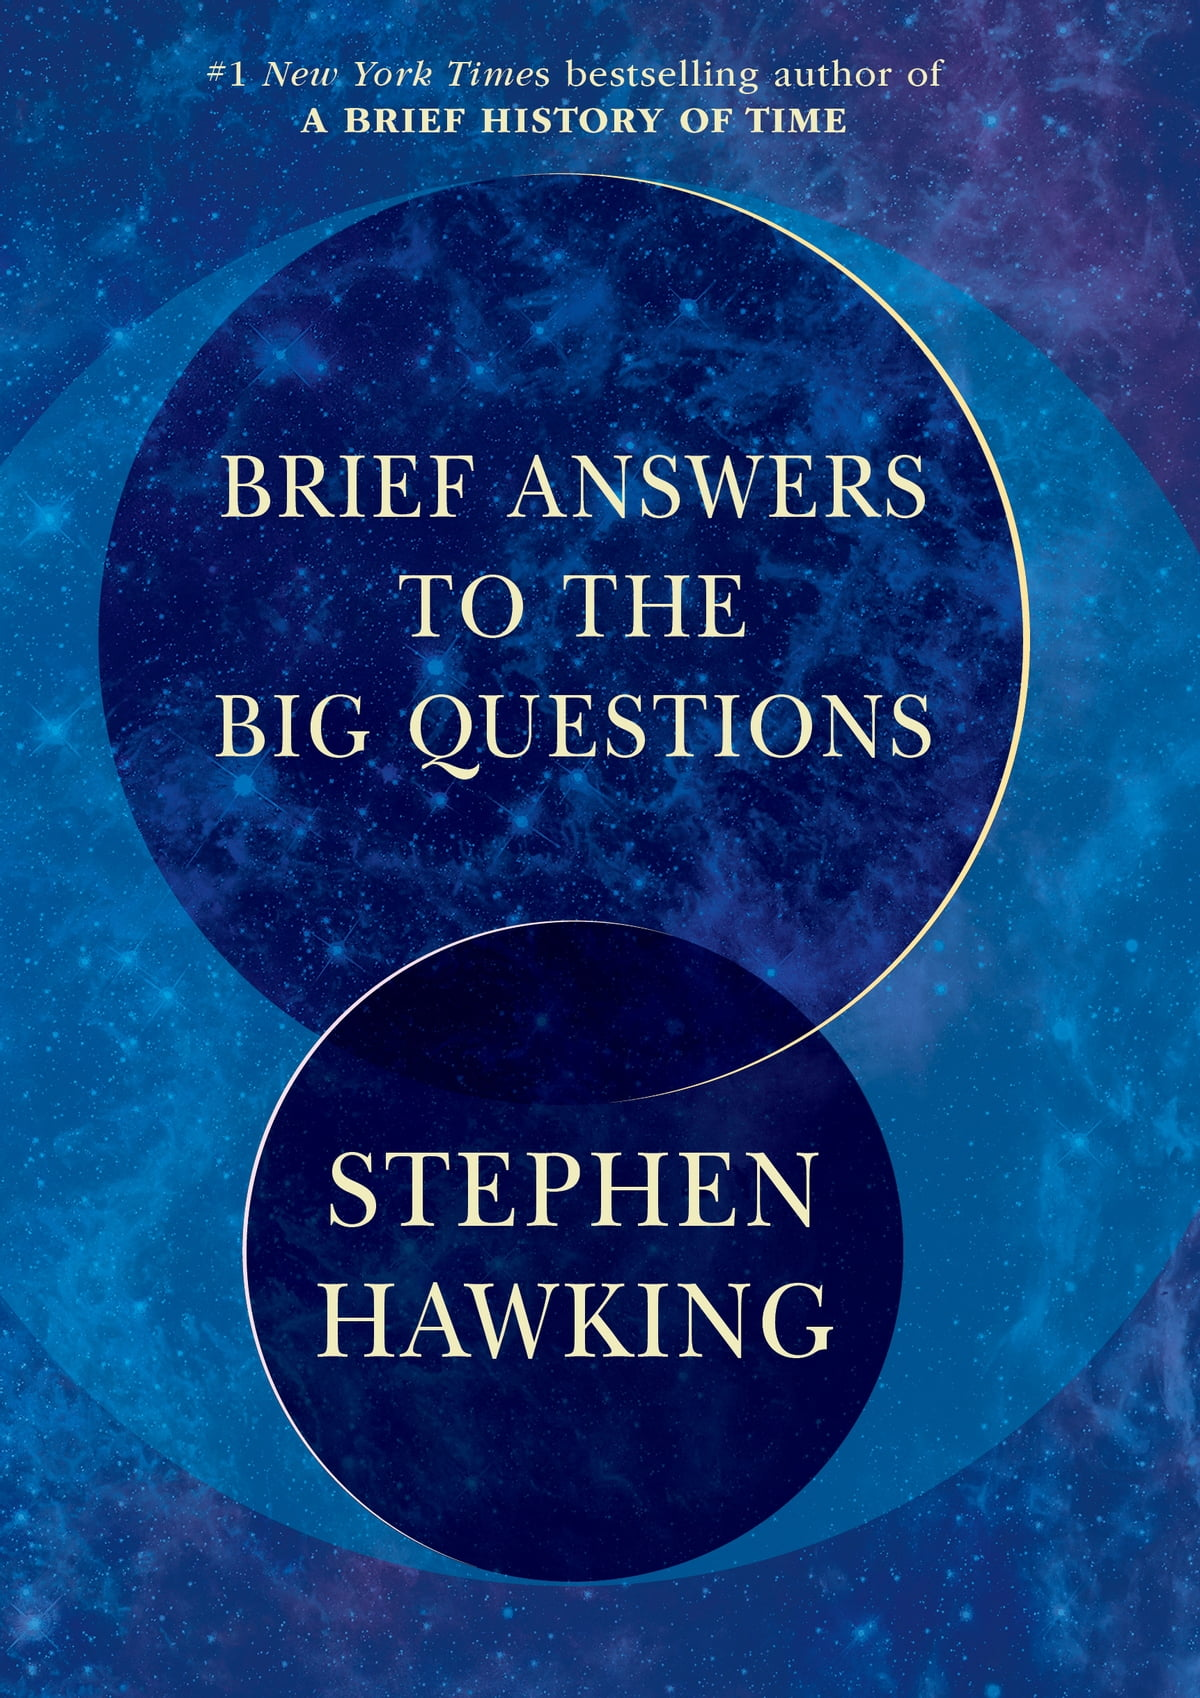 Brief Answers to the Big Questions eBook by Stephen Hawking | Rakuten Kobo